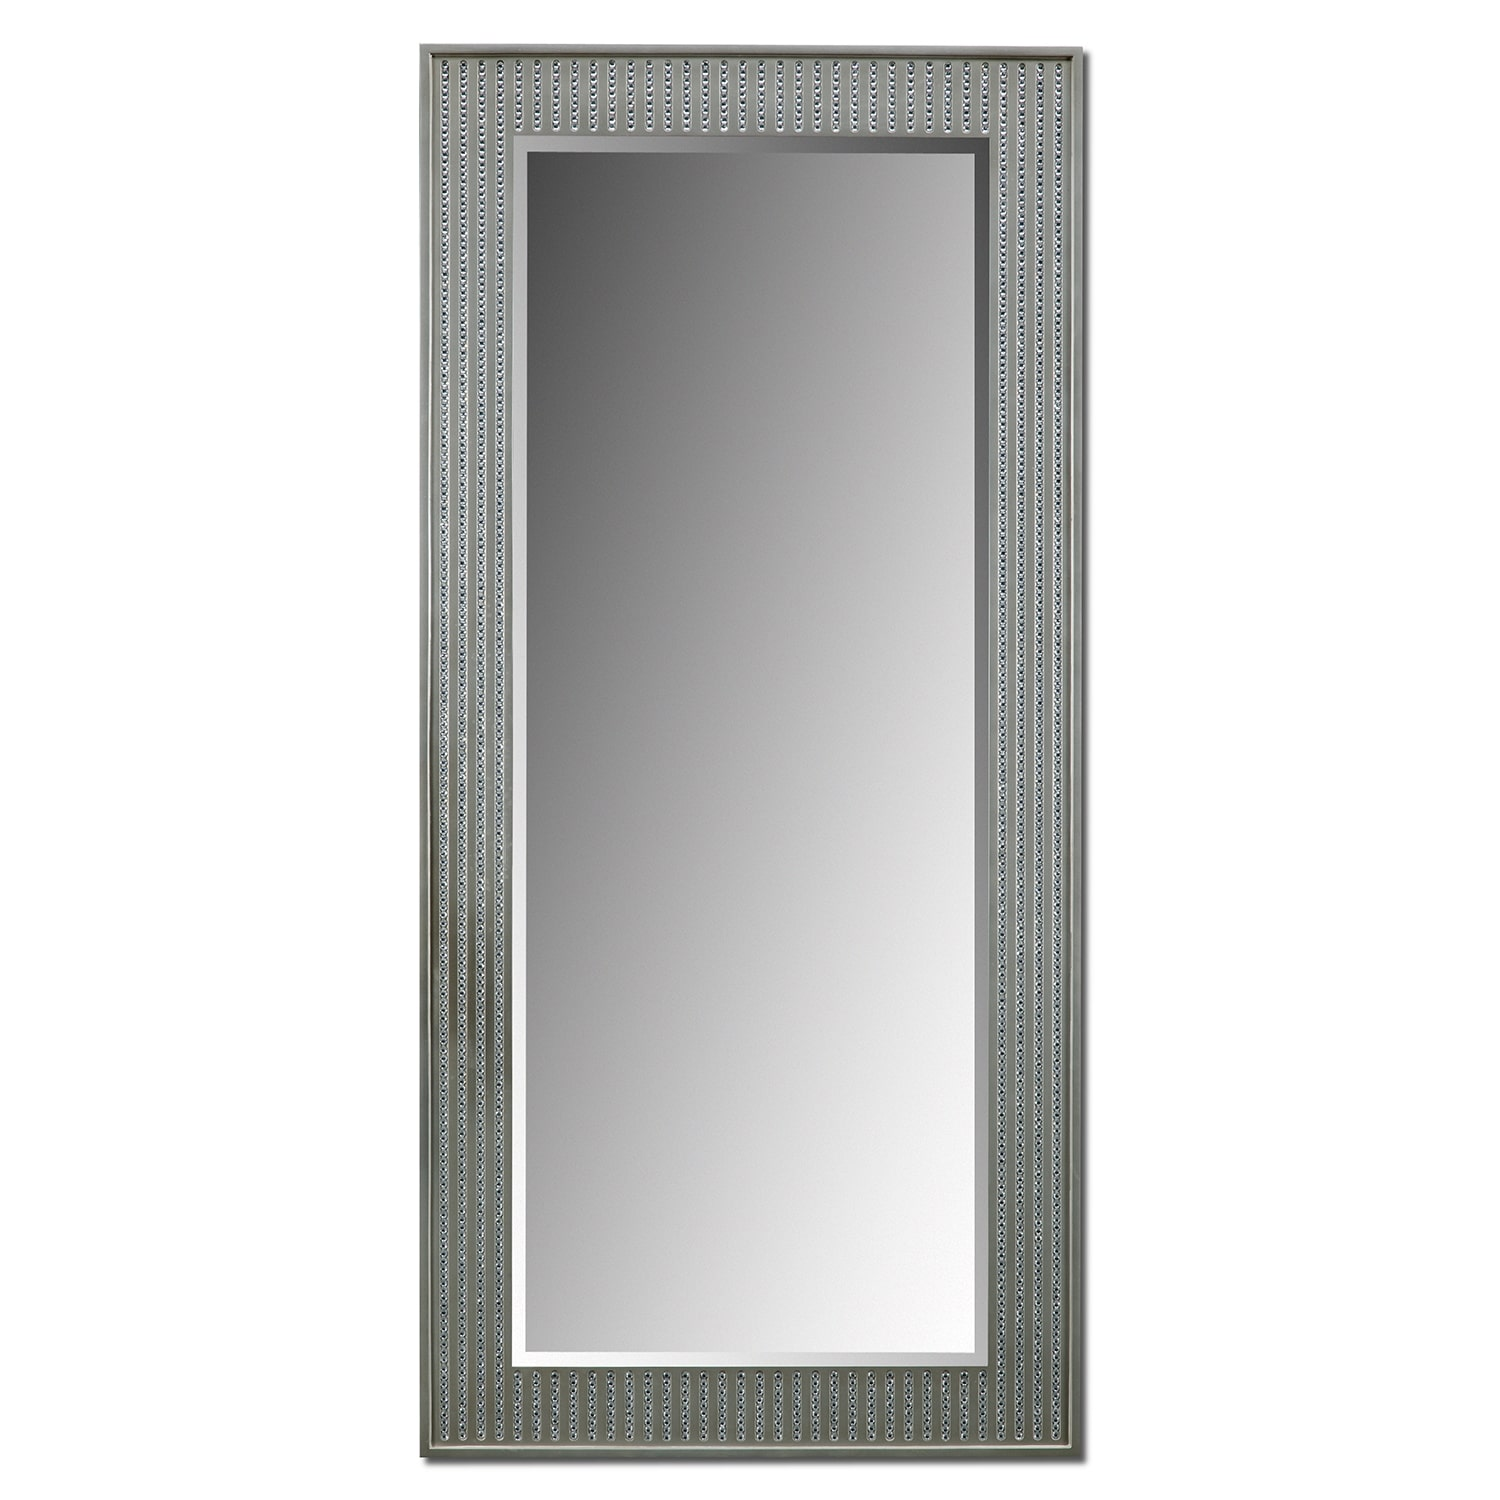 Bling Glam Floor Mirror - Silver